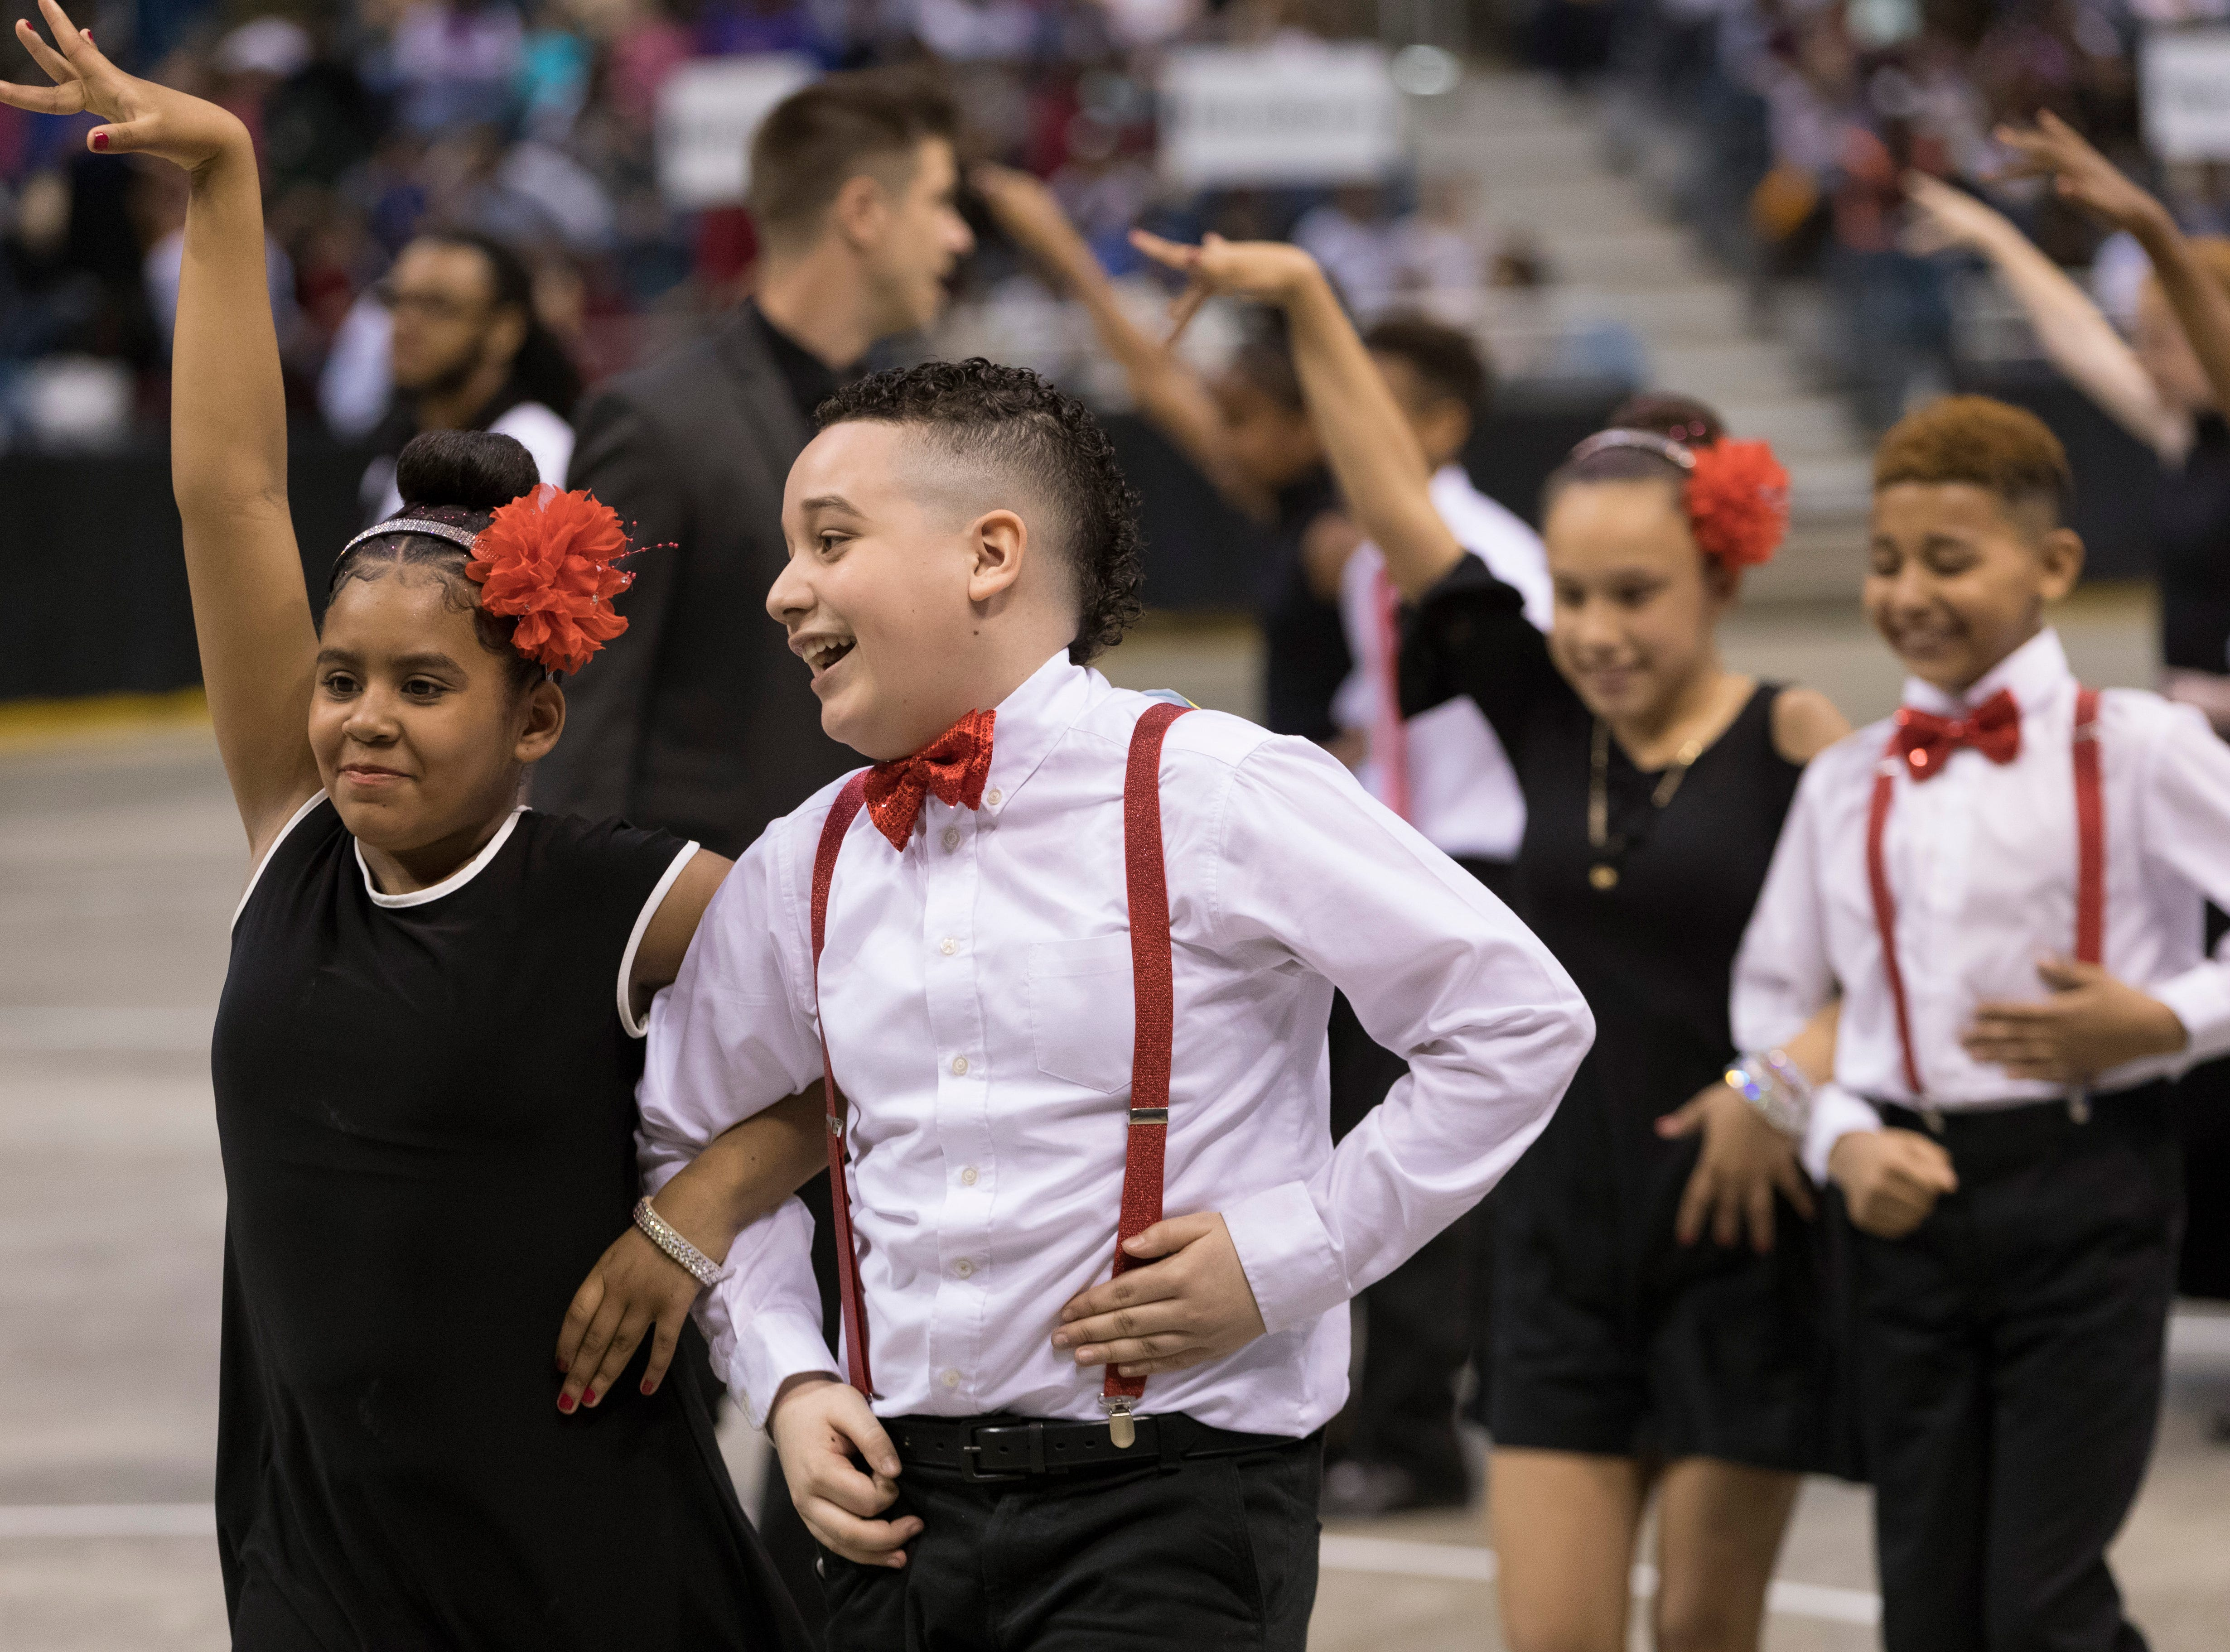 2018: Students take to the floor during the 12th annual Danceworks Mad Hot Ballroom and Tap Competition Saturday, May 19, 2018 at the BMO Harris Bradley Center. More than 1,000 5th and 6th grade students from more than 50 Milwaukee area schools competed and showed off the salsa, tango and swing moves they've been working on since February.